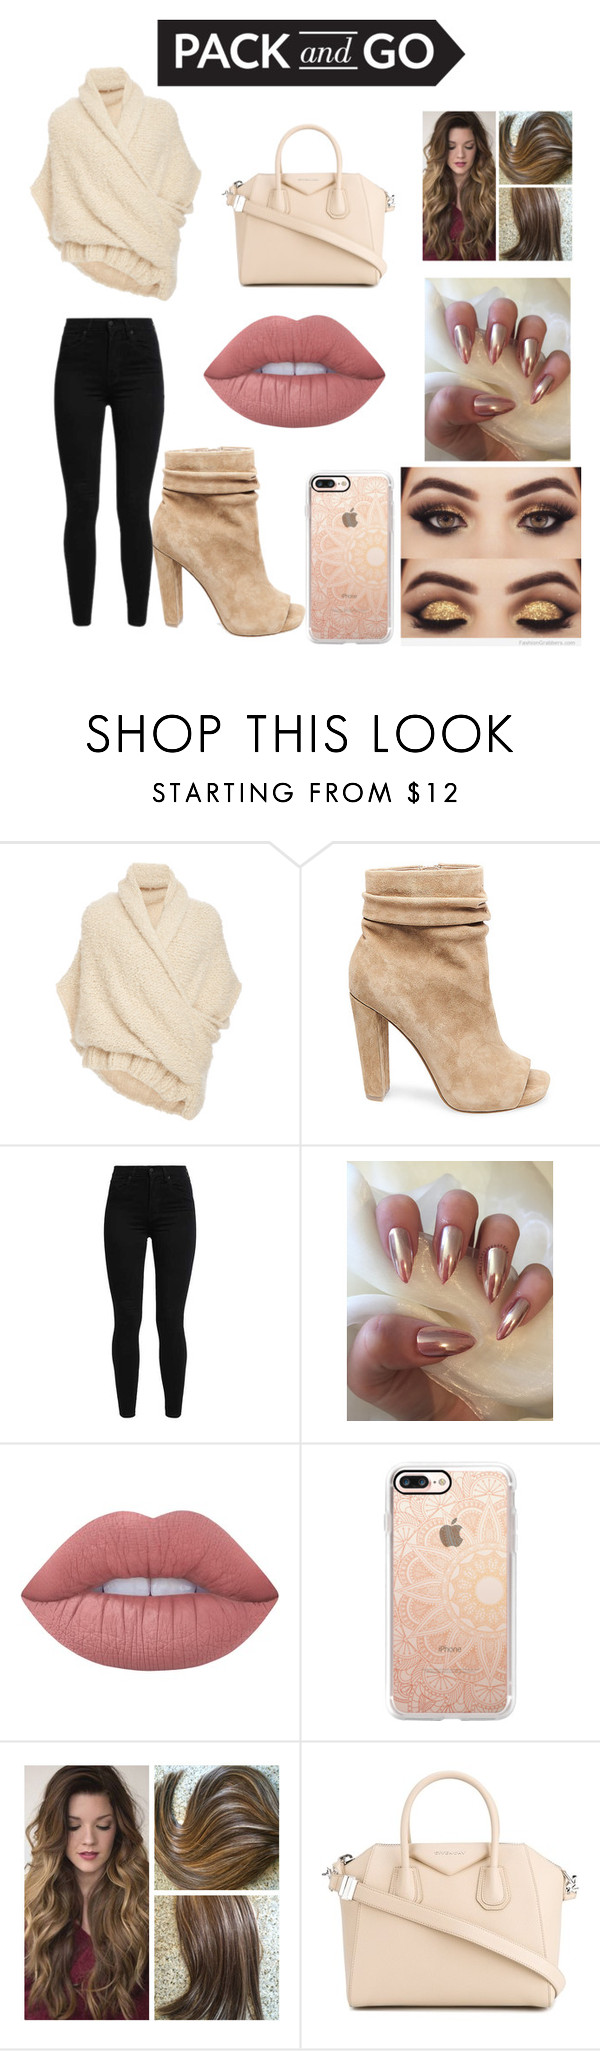 """I'm Ready!"" by divafashiononly ❤ liked on Polyvore featuring Tuinch, Steve Madden, Levi's, Lime Crime, Casetify and Givenchy"